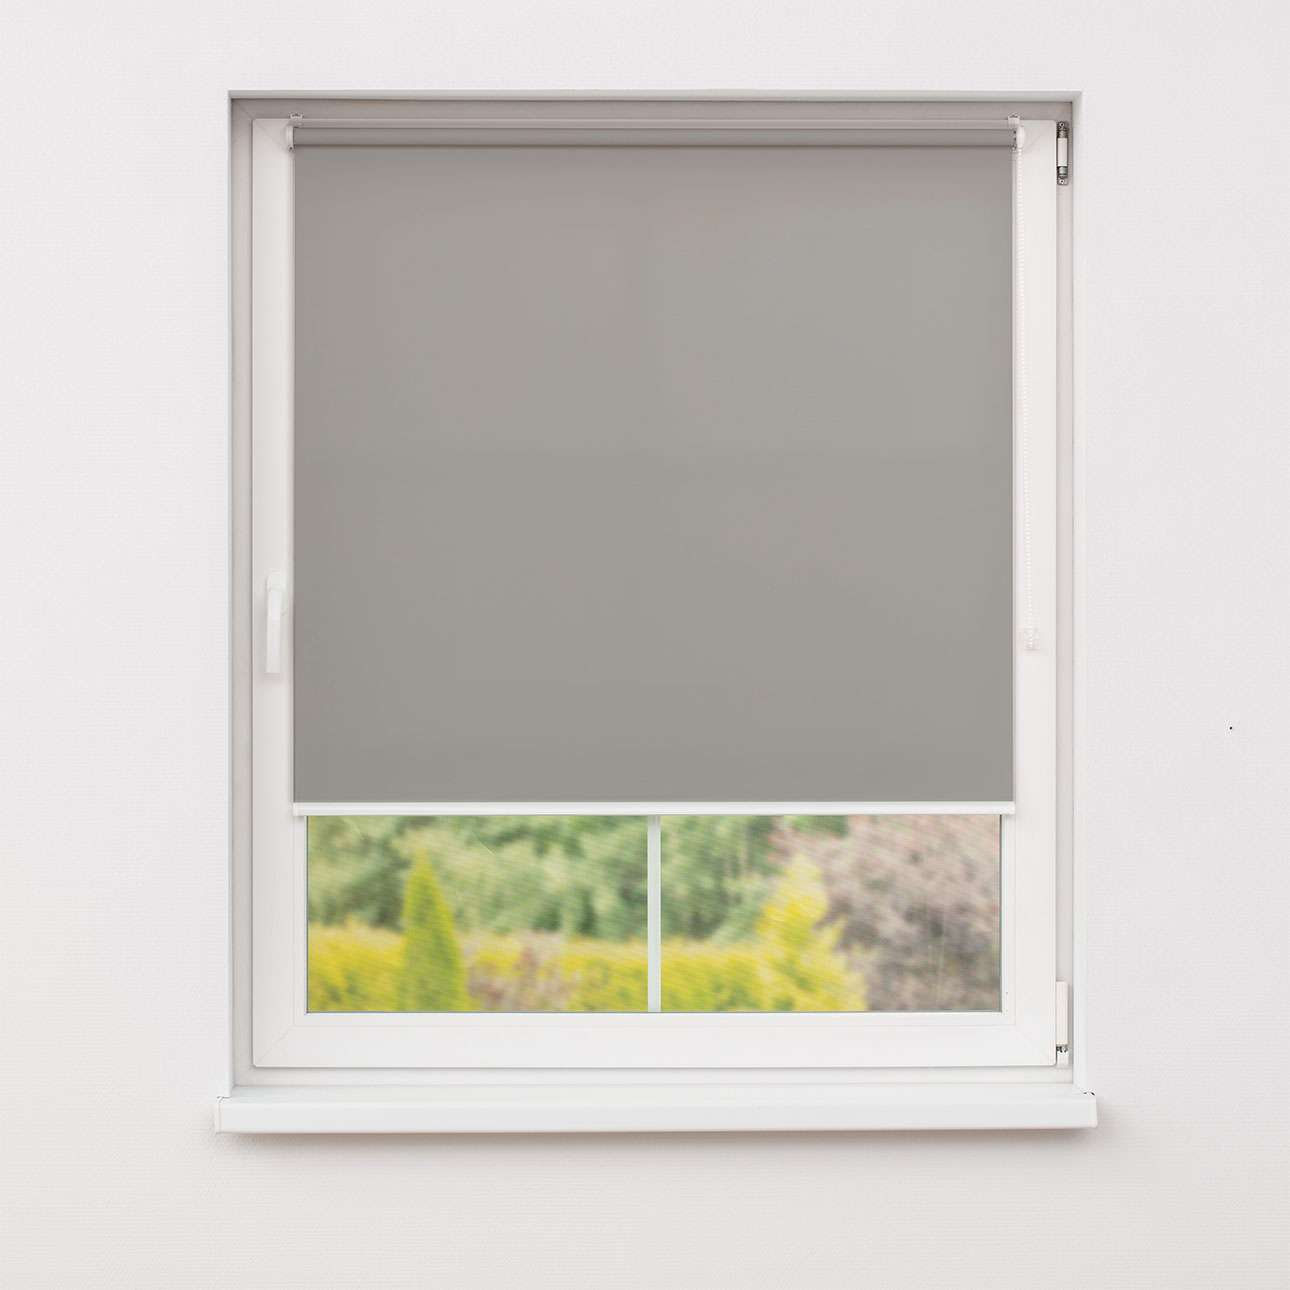 Mini roller blind (compact design for fitting inside window recess) in collection Roller blind transparent, fabric: 4993